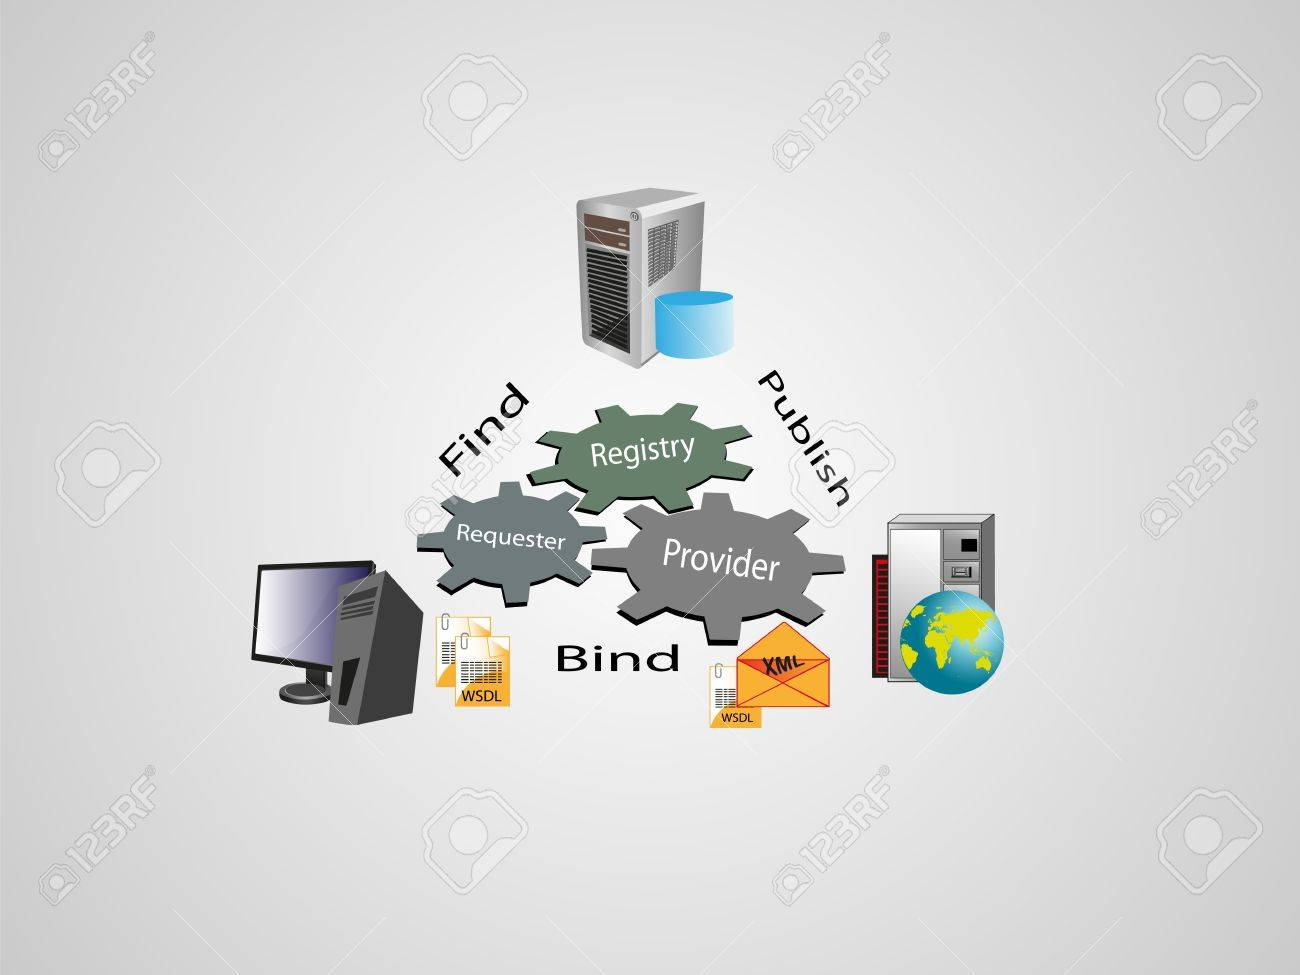 SOA and Web Services architecture, this image describes the architecture of web service and its key entities or nodes that connects each other using internet protocol using xml and wsdl technology open standards Stock Vector - 21925474